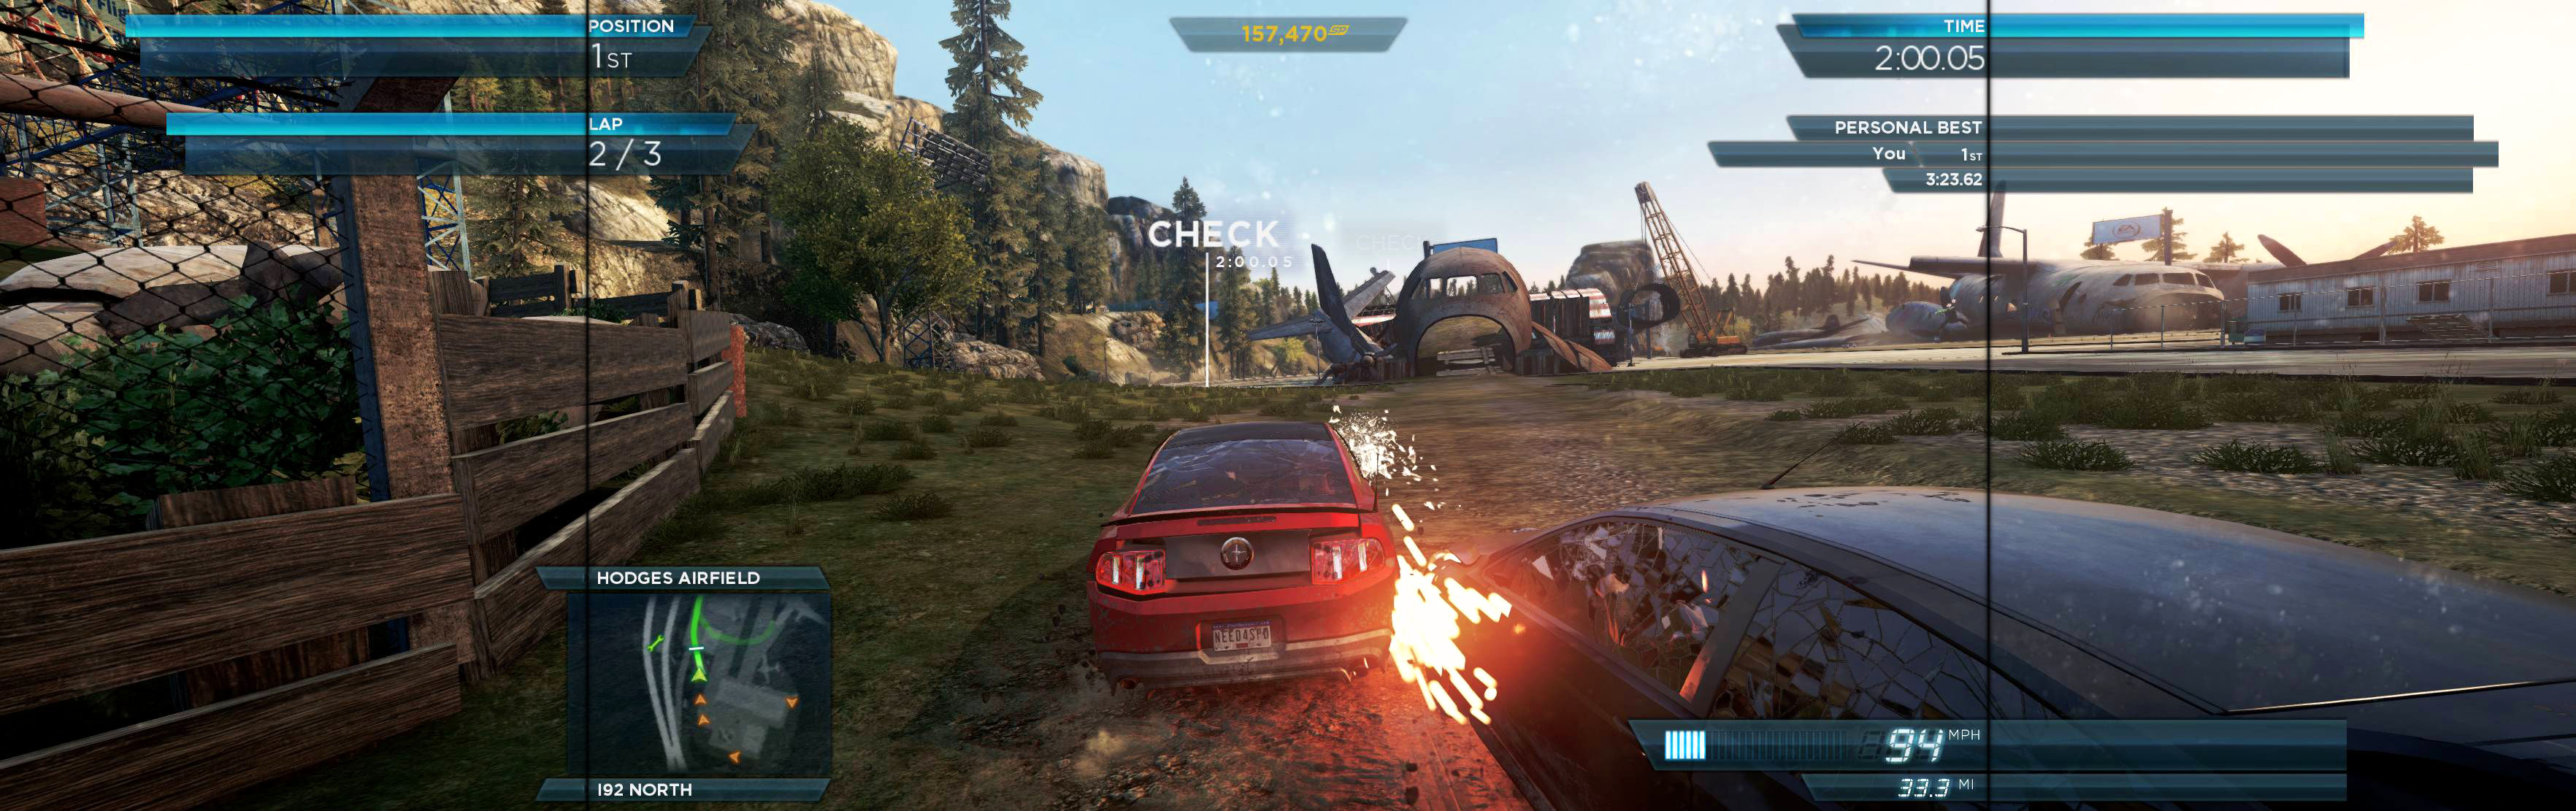 need for speed most wanted cracks